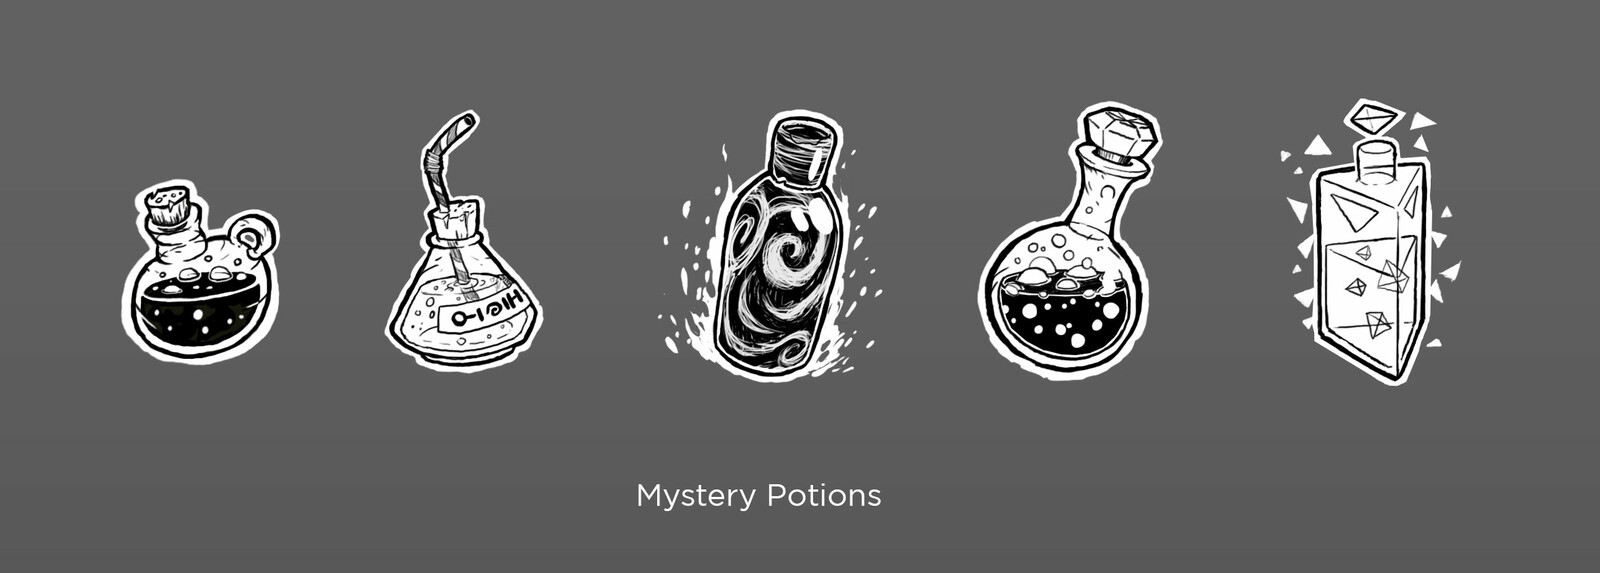 Unidentified Potions concepts